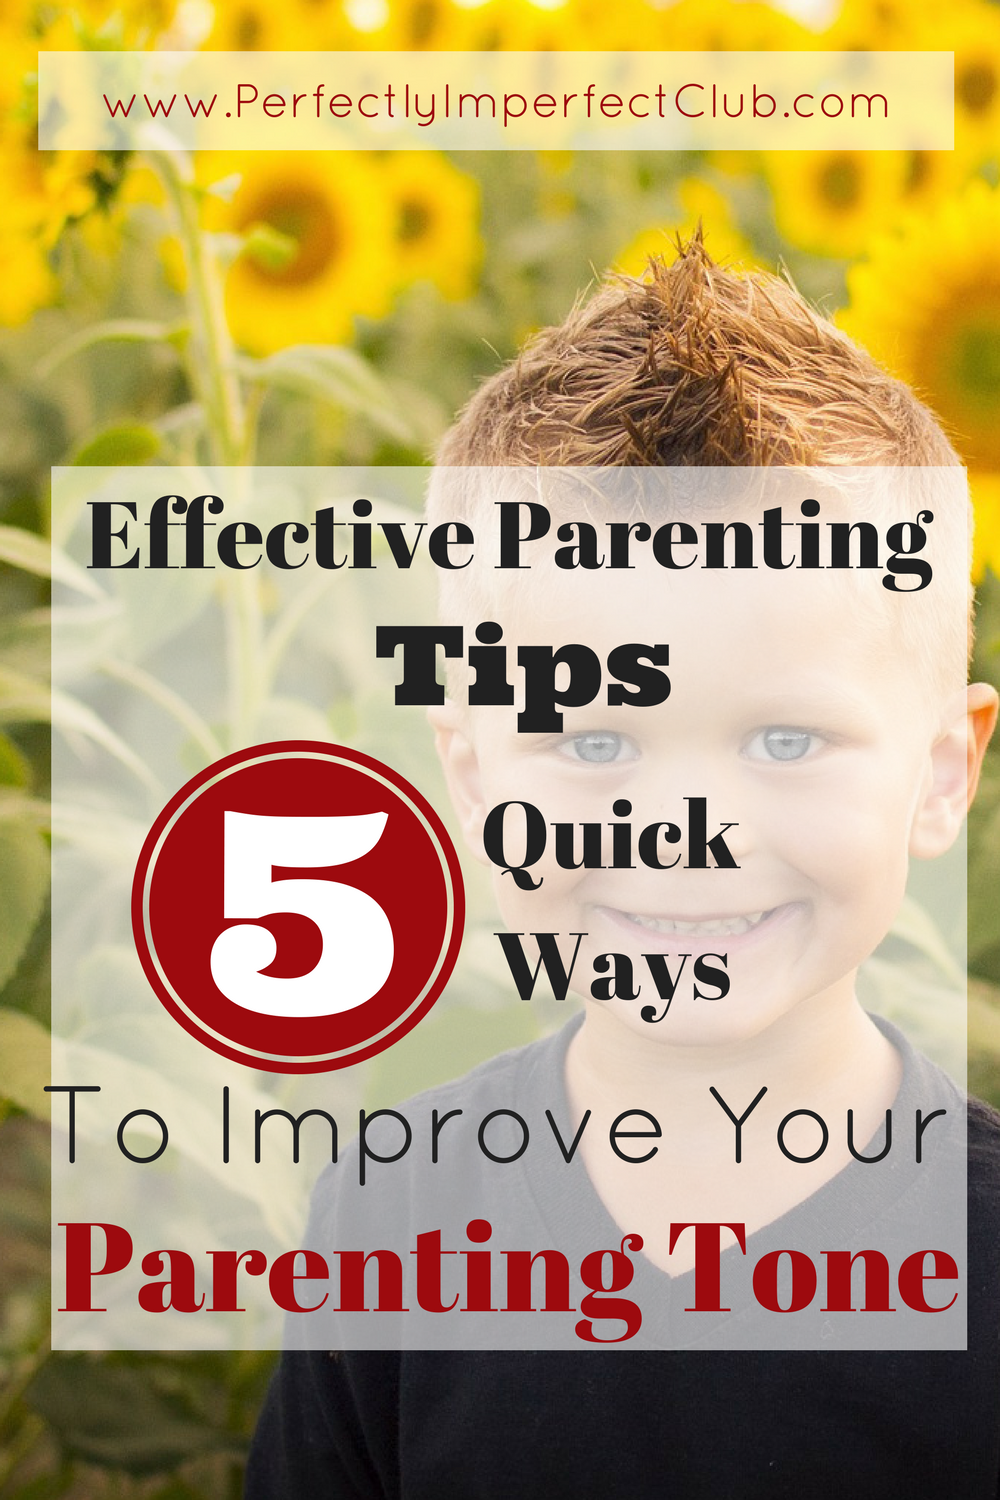 Effective Parenting Tips: 5 Quick Ways to Improve Your Parenting Tone